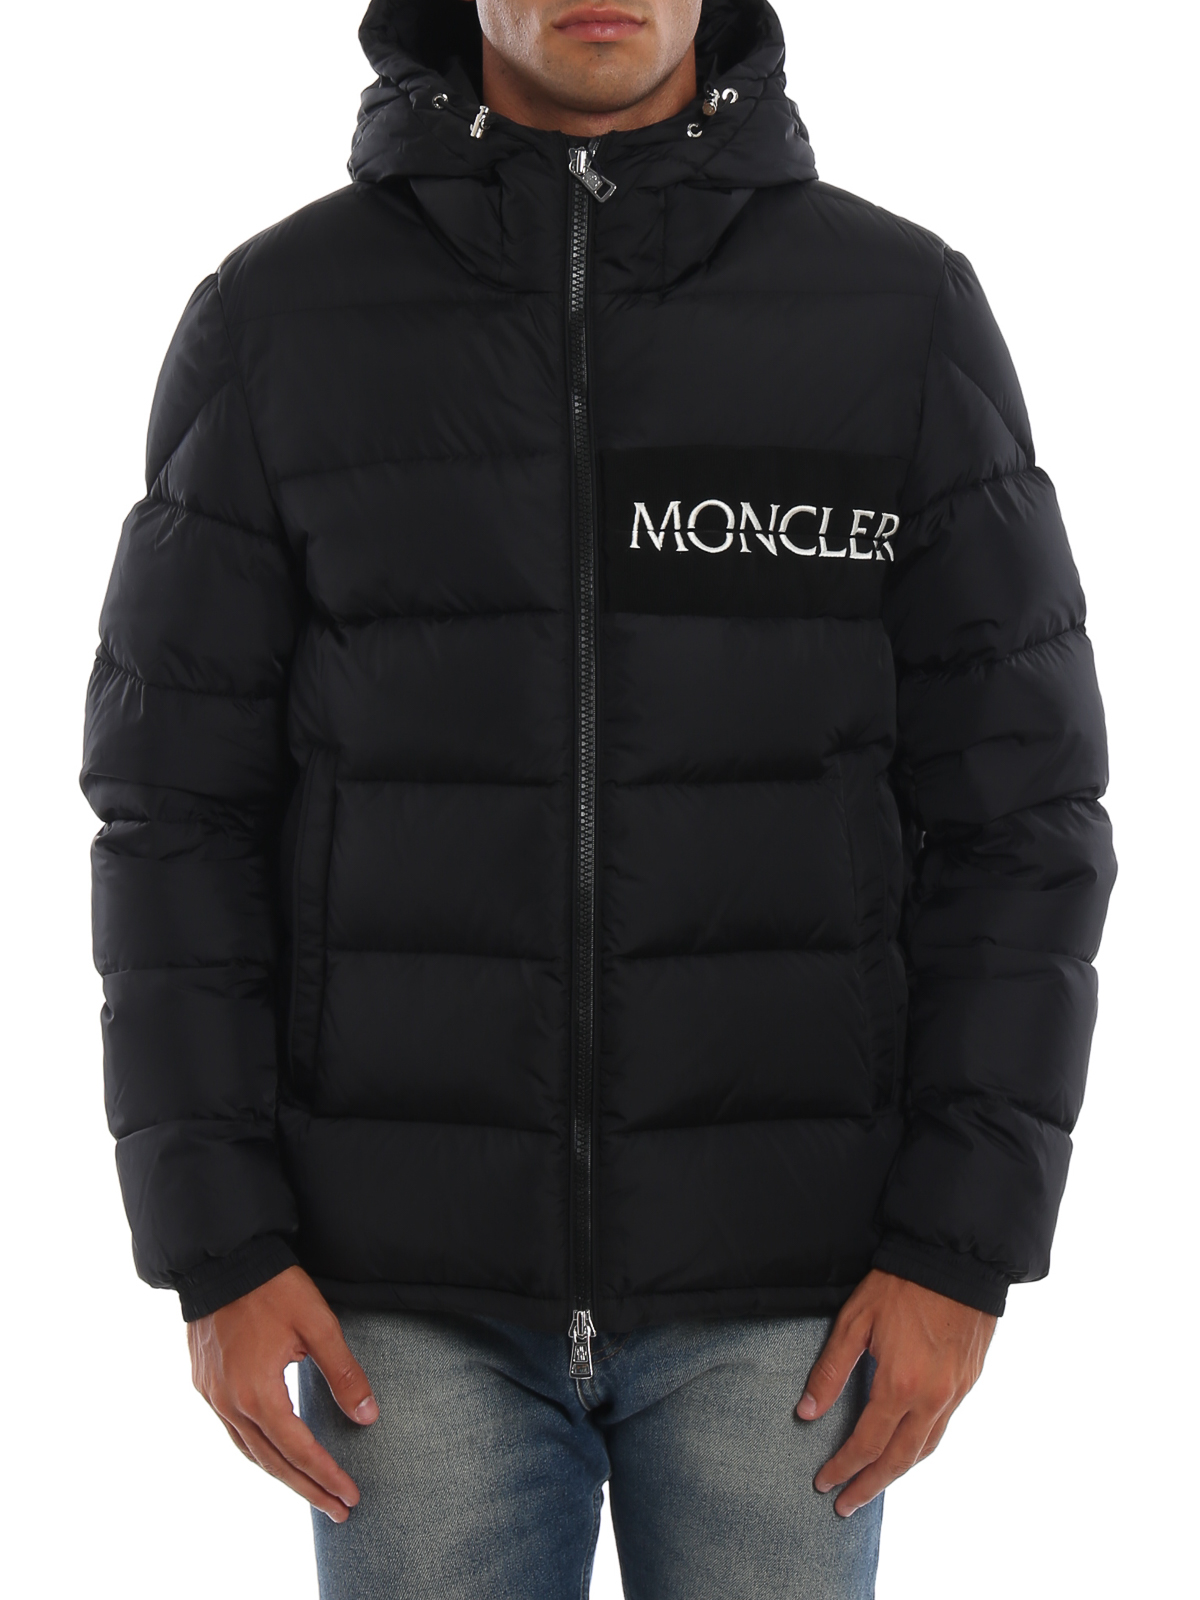 a82c3a74b6ae Moncler - Aiton embroidered logo black puffer jacket - padded ...